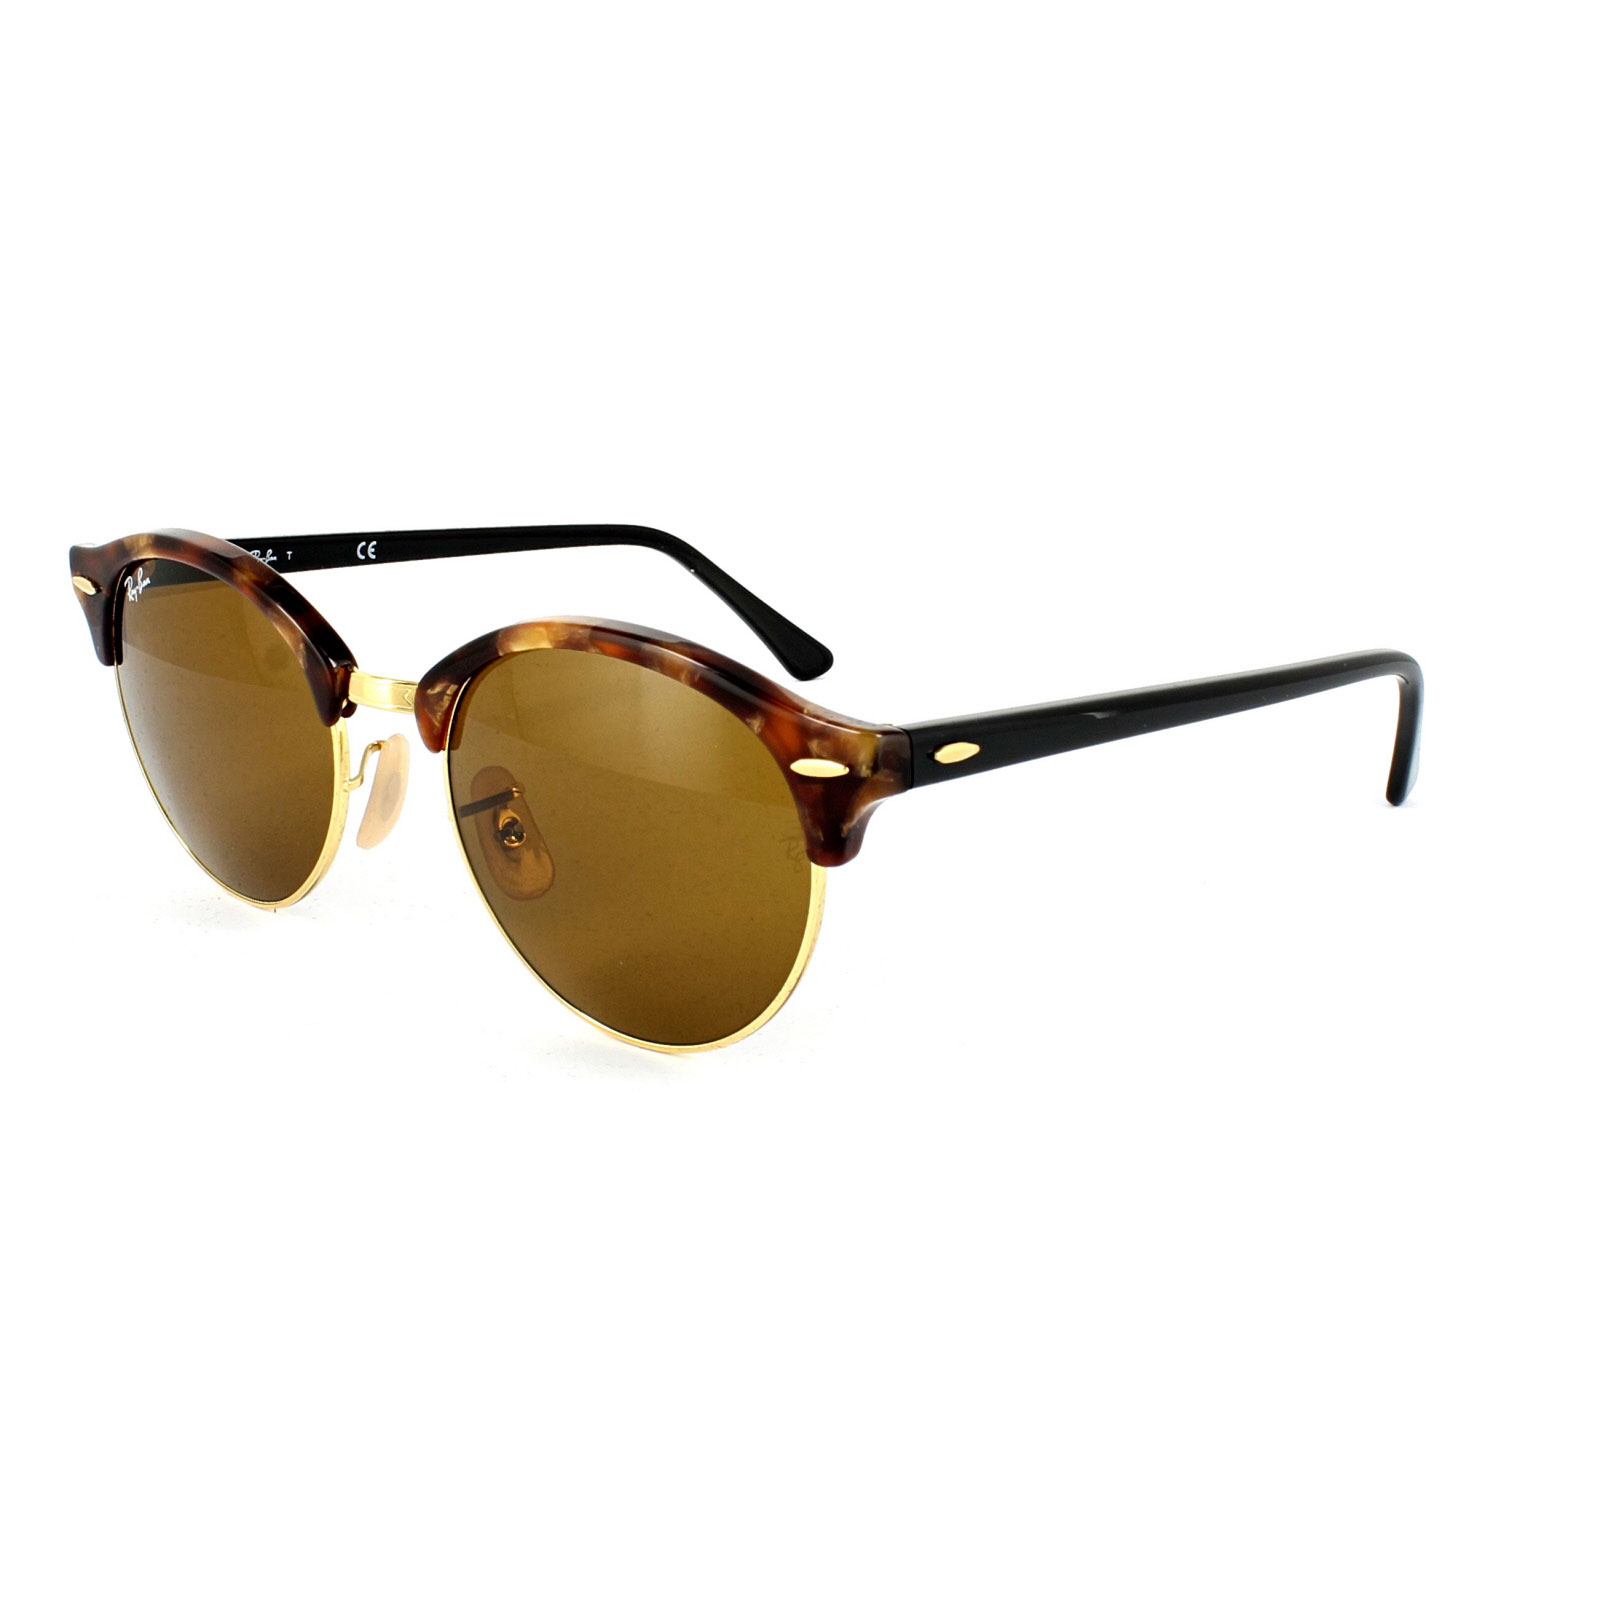 b58945ca81d Sentinel Ray-Ban Sunglasses Clubround 4246 1160 Spotted Brown Havana   Gold  Brown